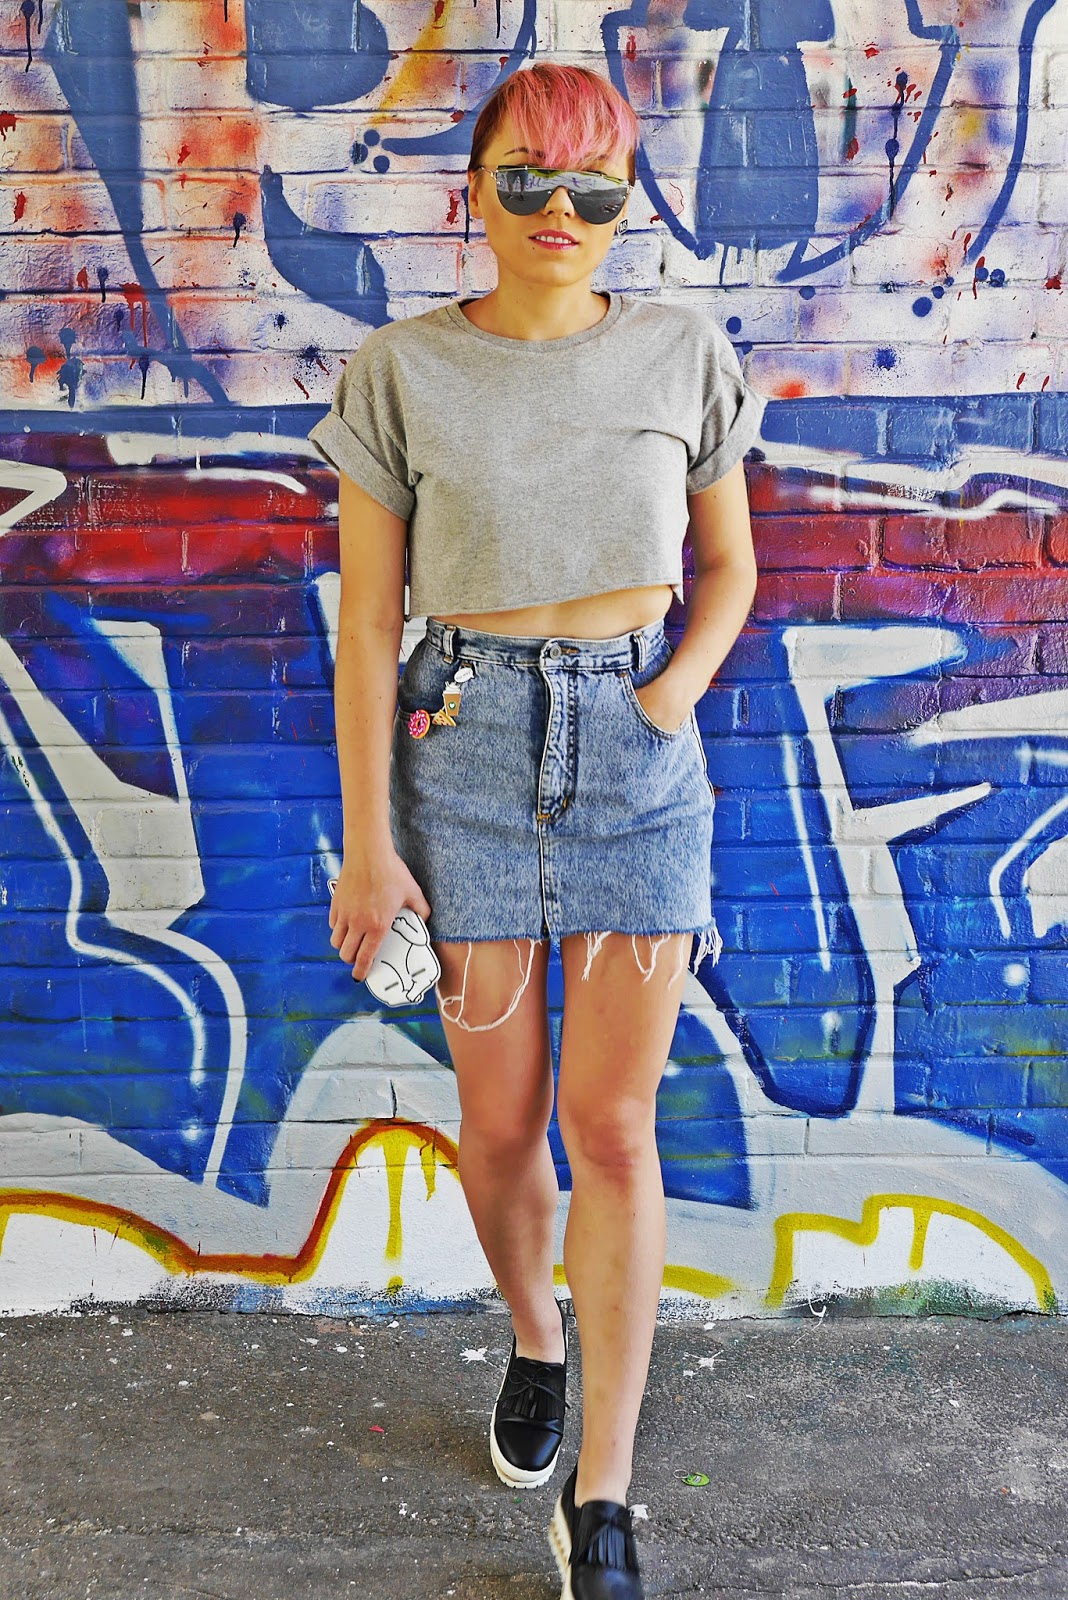 denim_skirt_crop_top_platform_shoes_karyn_blog_modowy_160717a